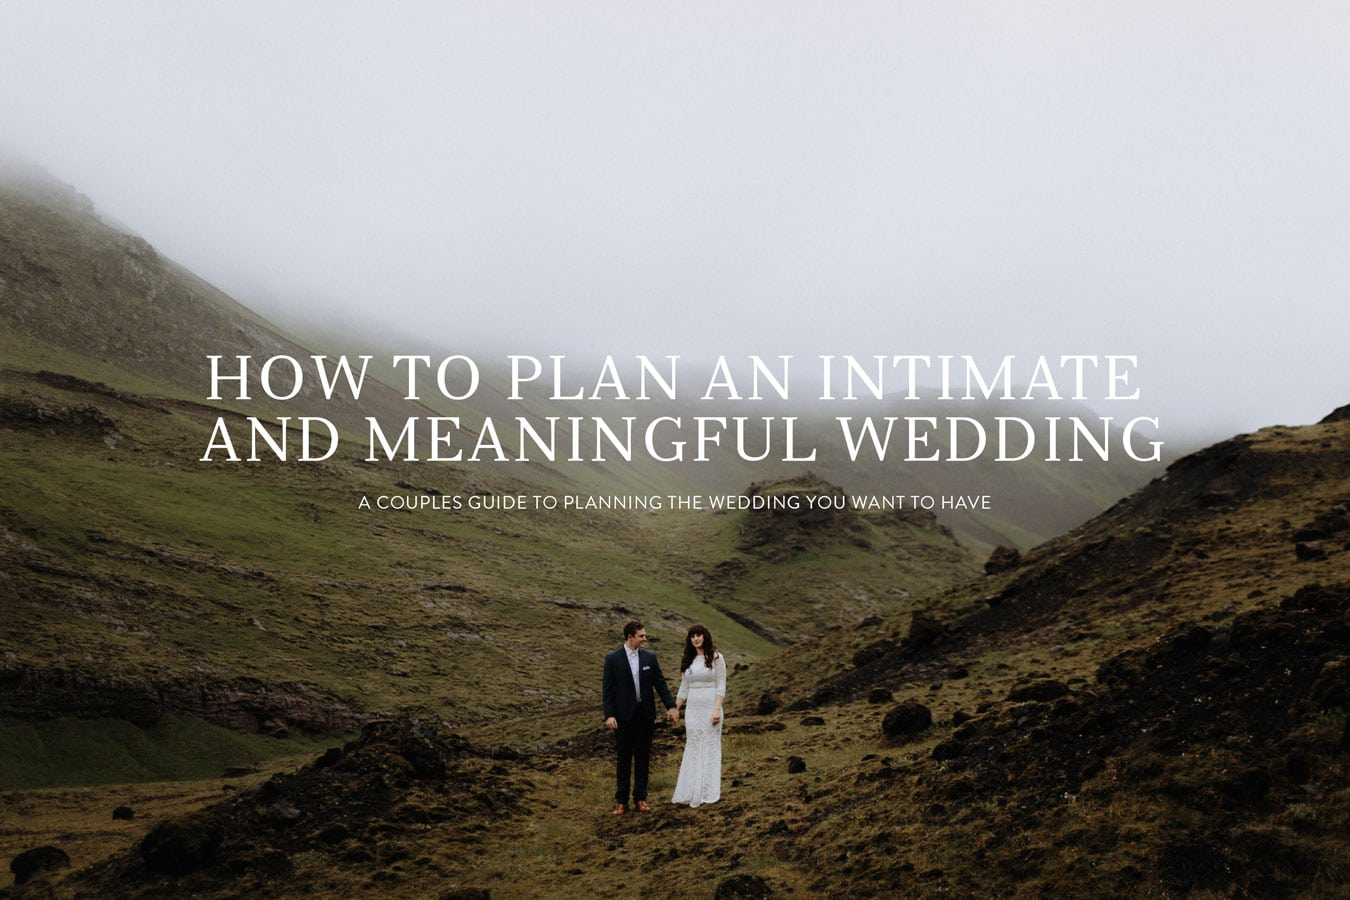 How To Plan an Intimate and Meaningful Wedding by Levi Tijerina